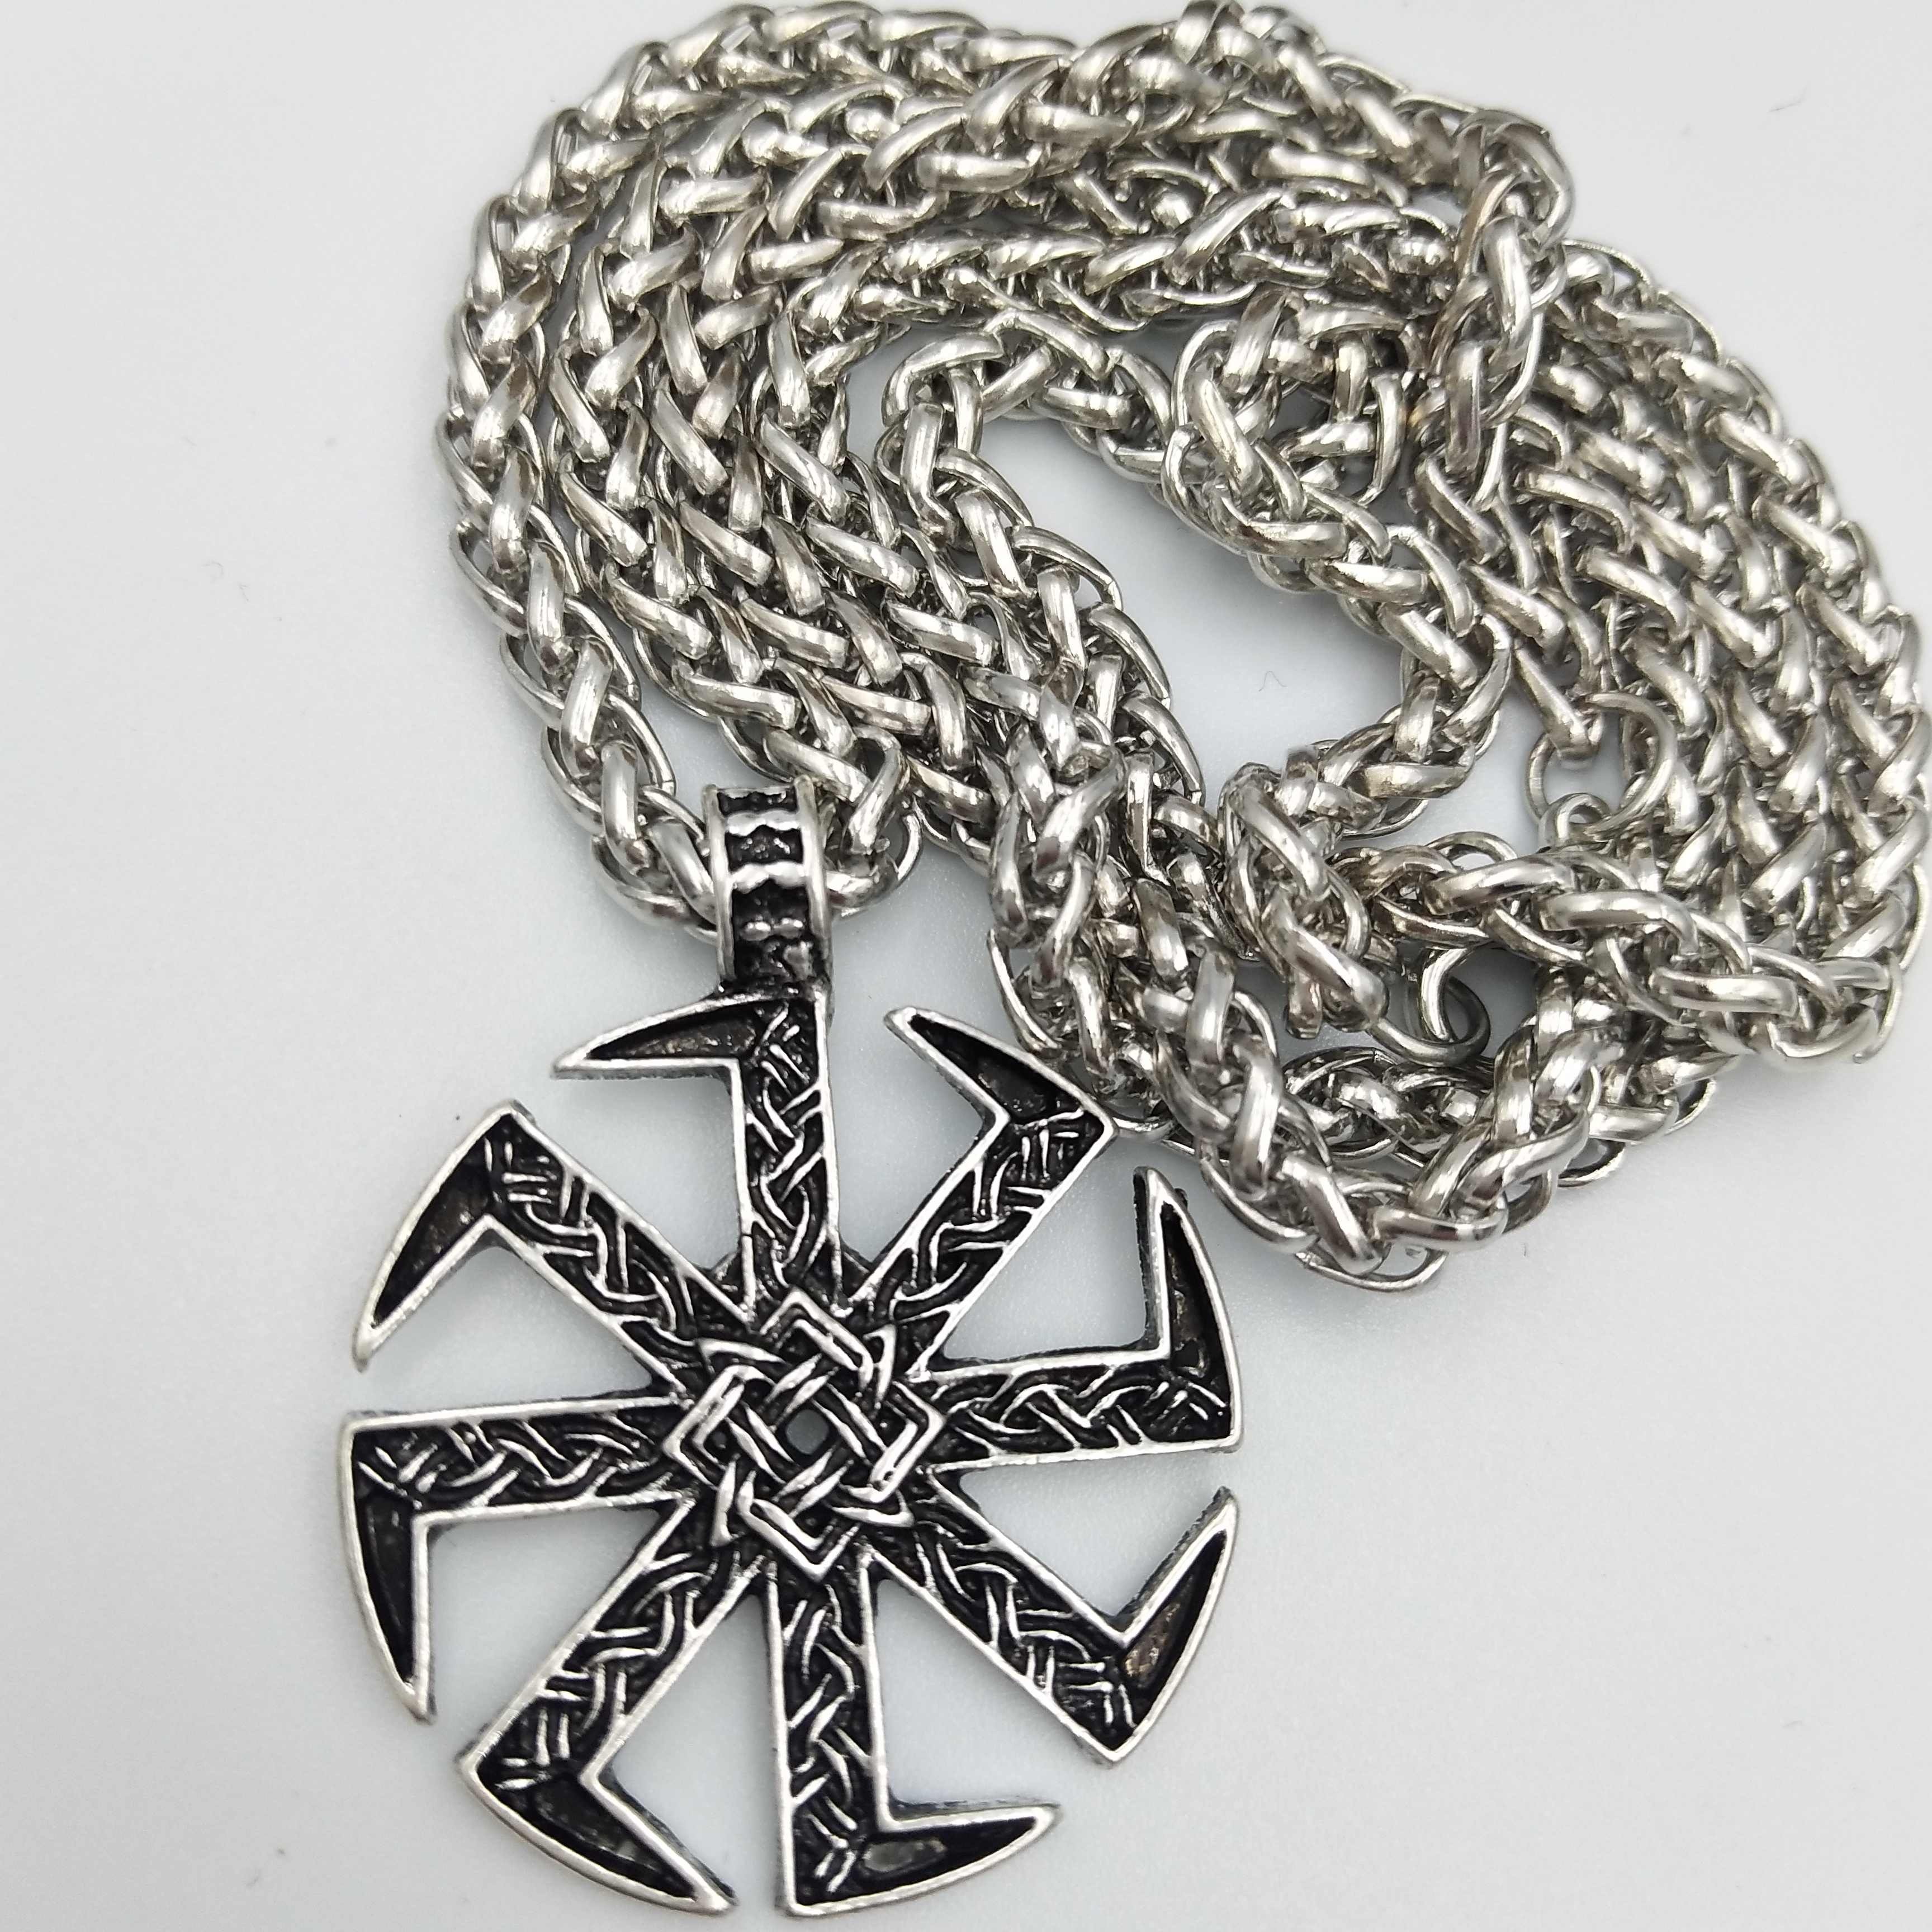 Slavic Kolovrat Amulet Pendant Pagan Sunfiower Talisman Norse Jewelry Necklace & Pendants Slavic Symbol Silver Necklace Freeship